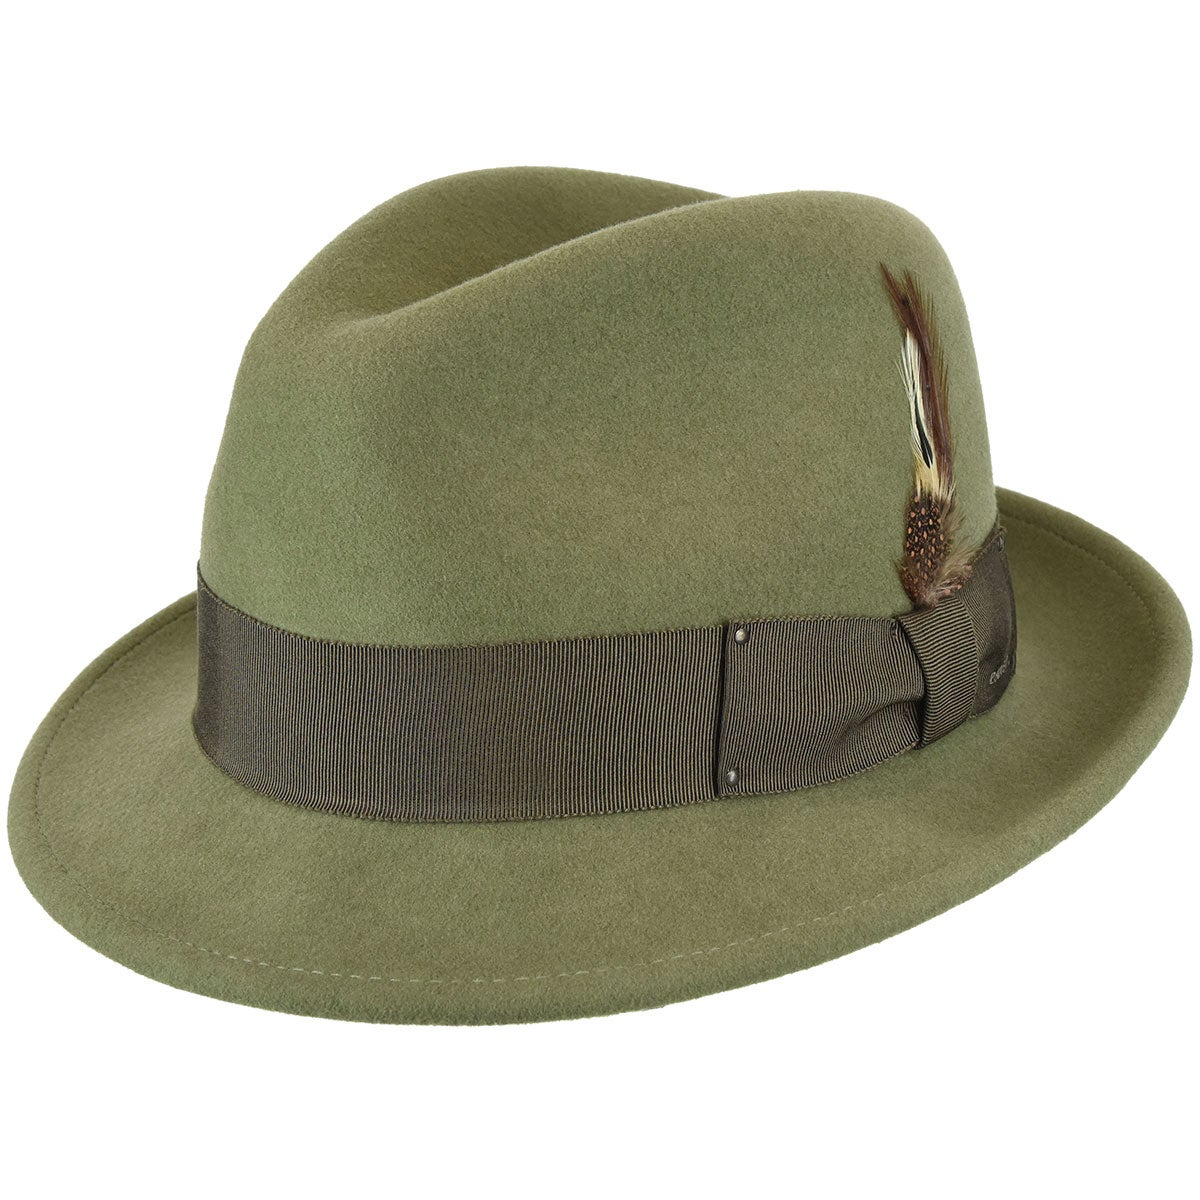 1960s – 70s Style Men's Hats Tino LiteFelt Fedora $100.00 AT vintagedancer.com